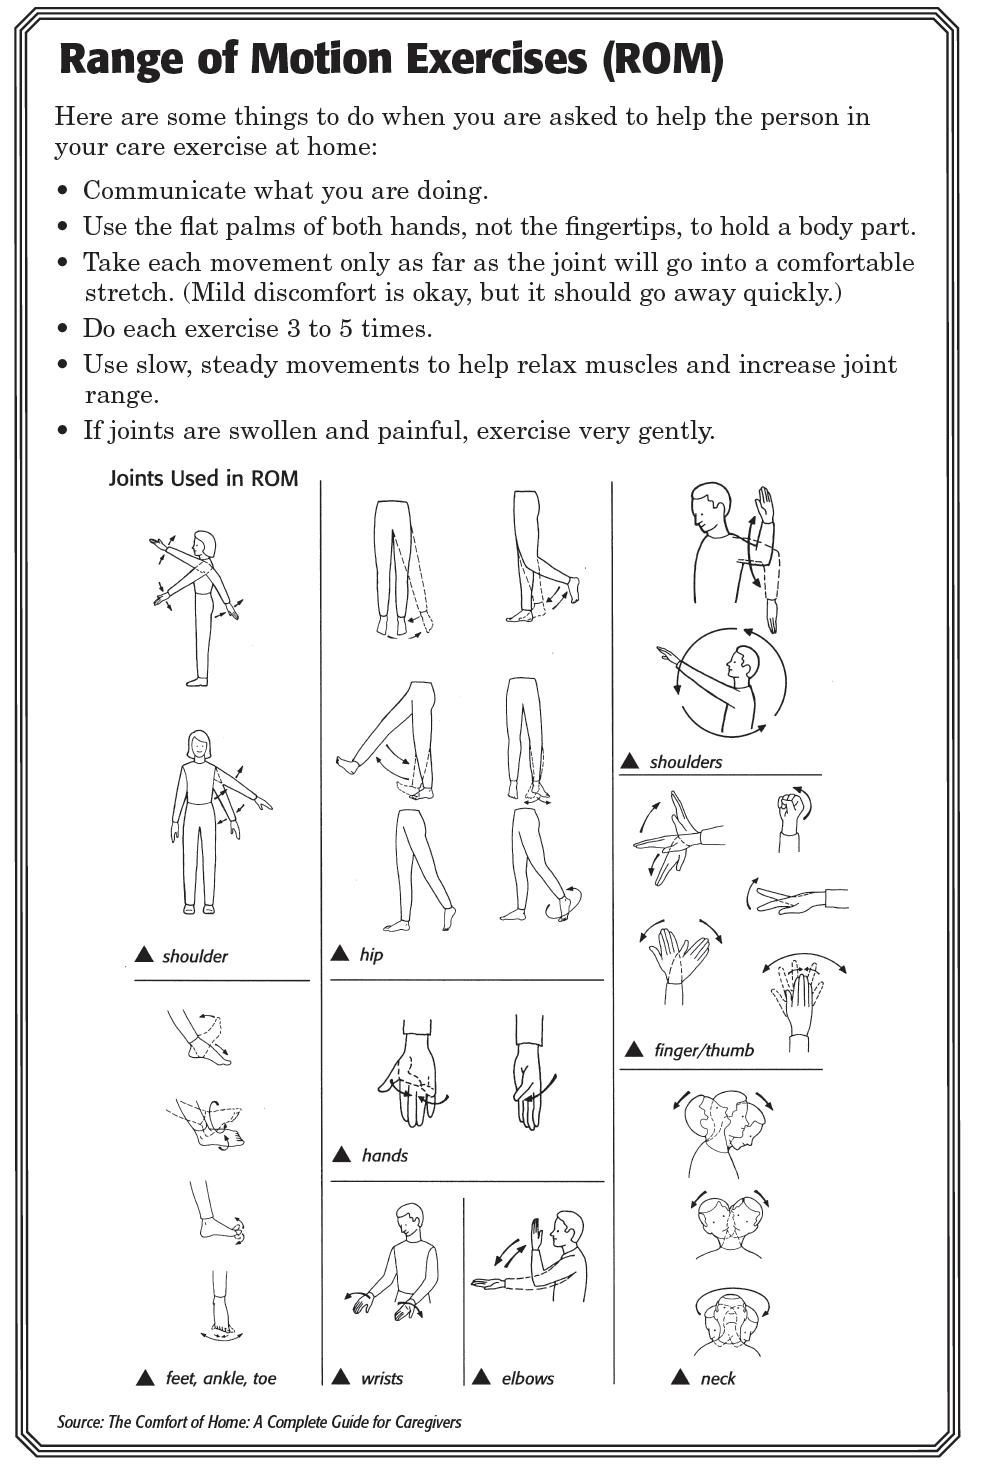 Ankle sprain physical therapy - Try These Range Of Motion Exercises With Them And Let Us Know What You